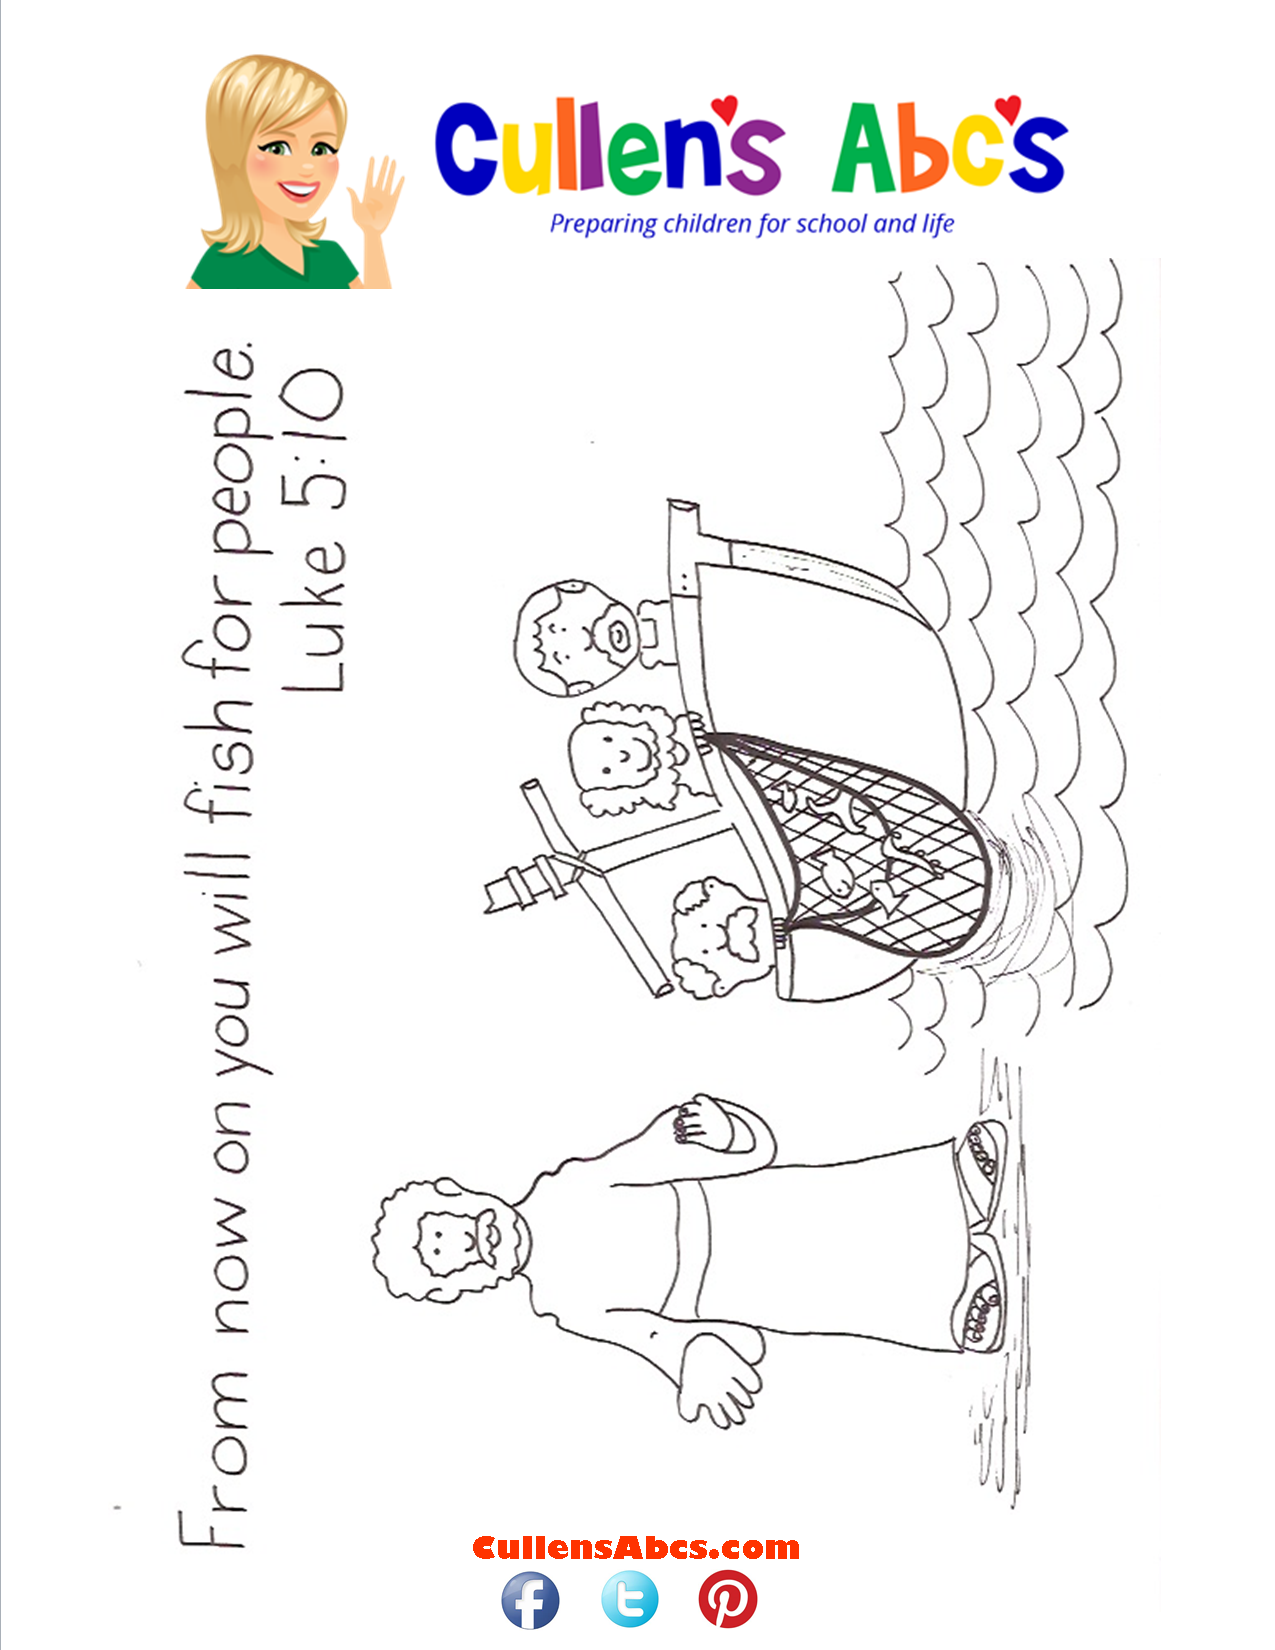 Bible Key Point Coloring Page-From Now on you will fish for people